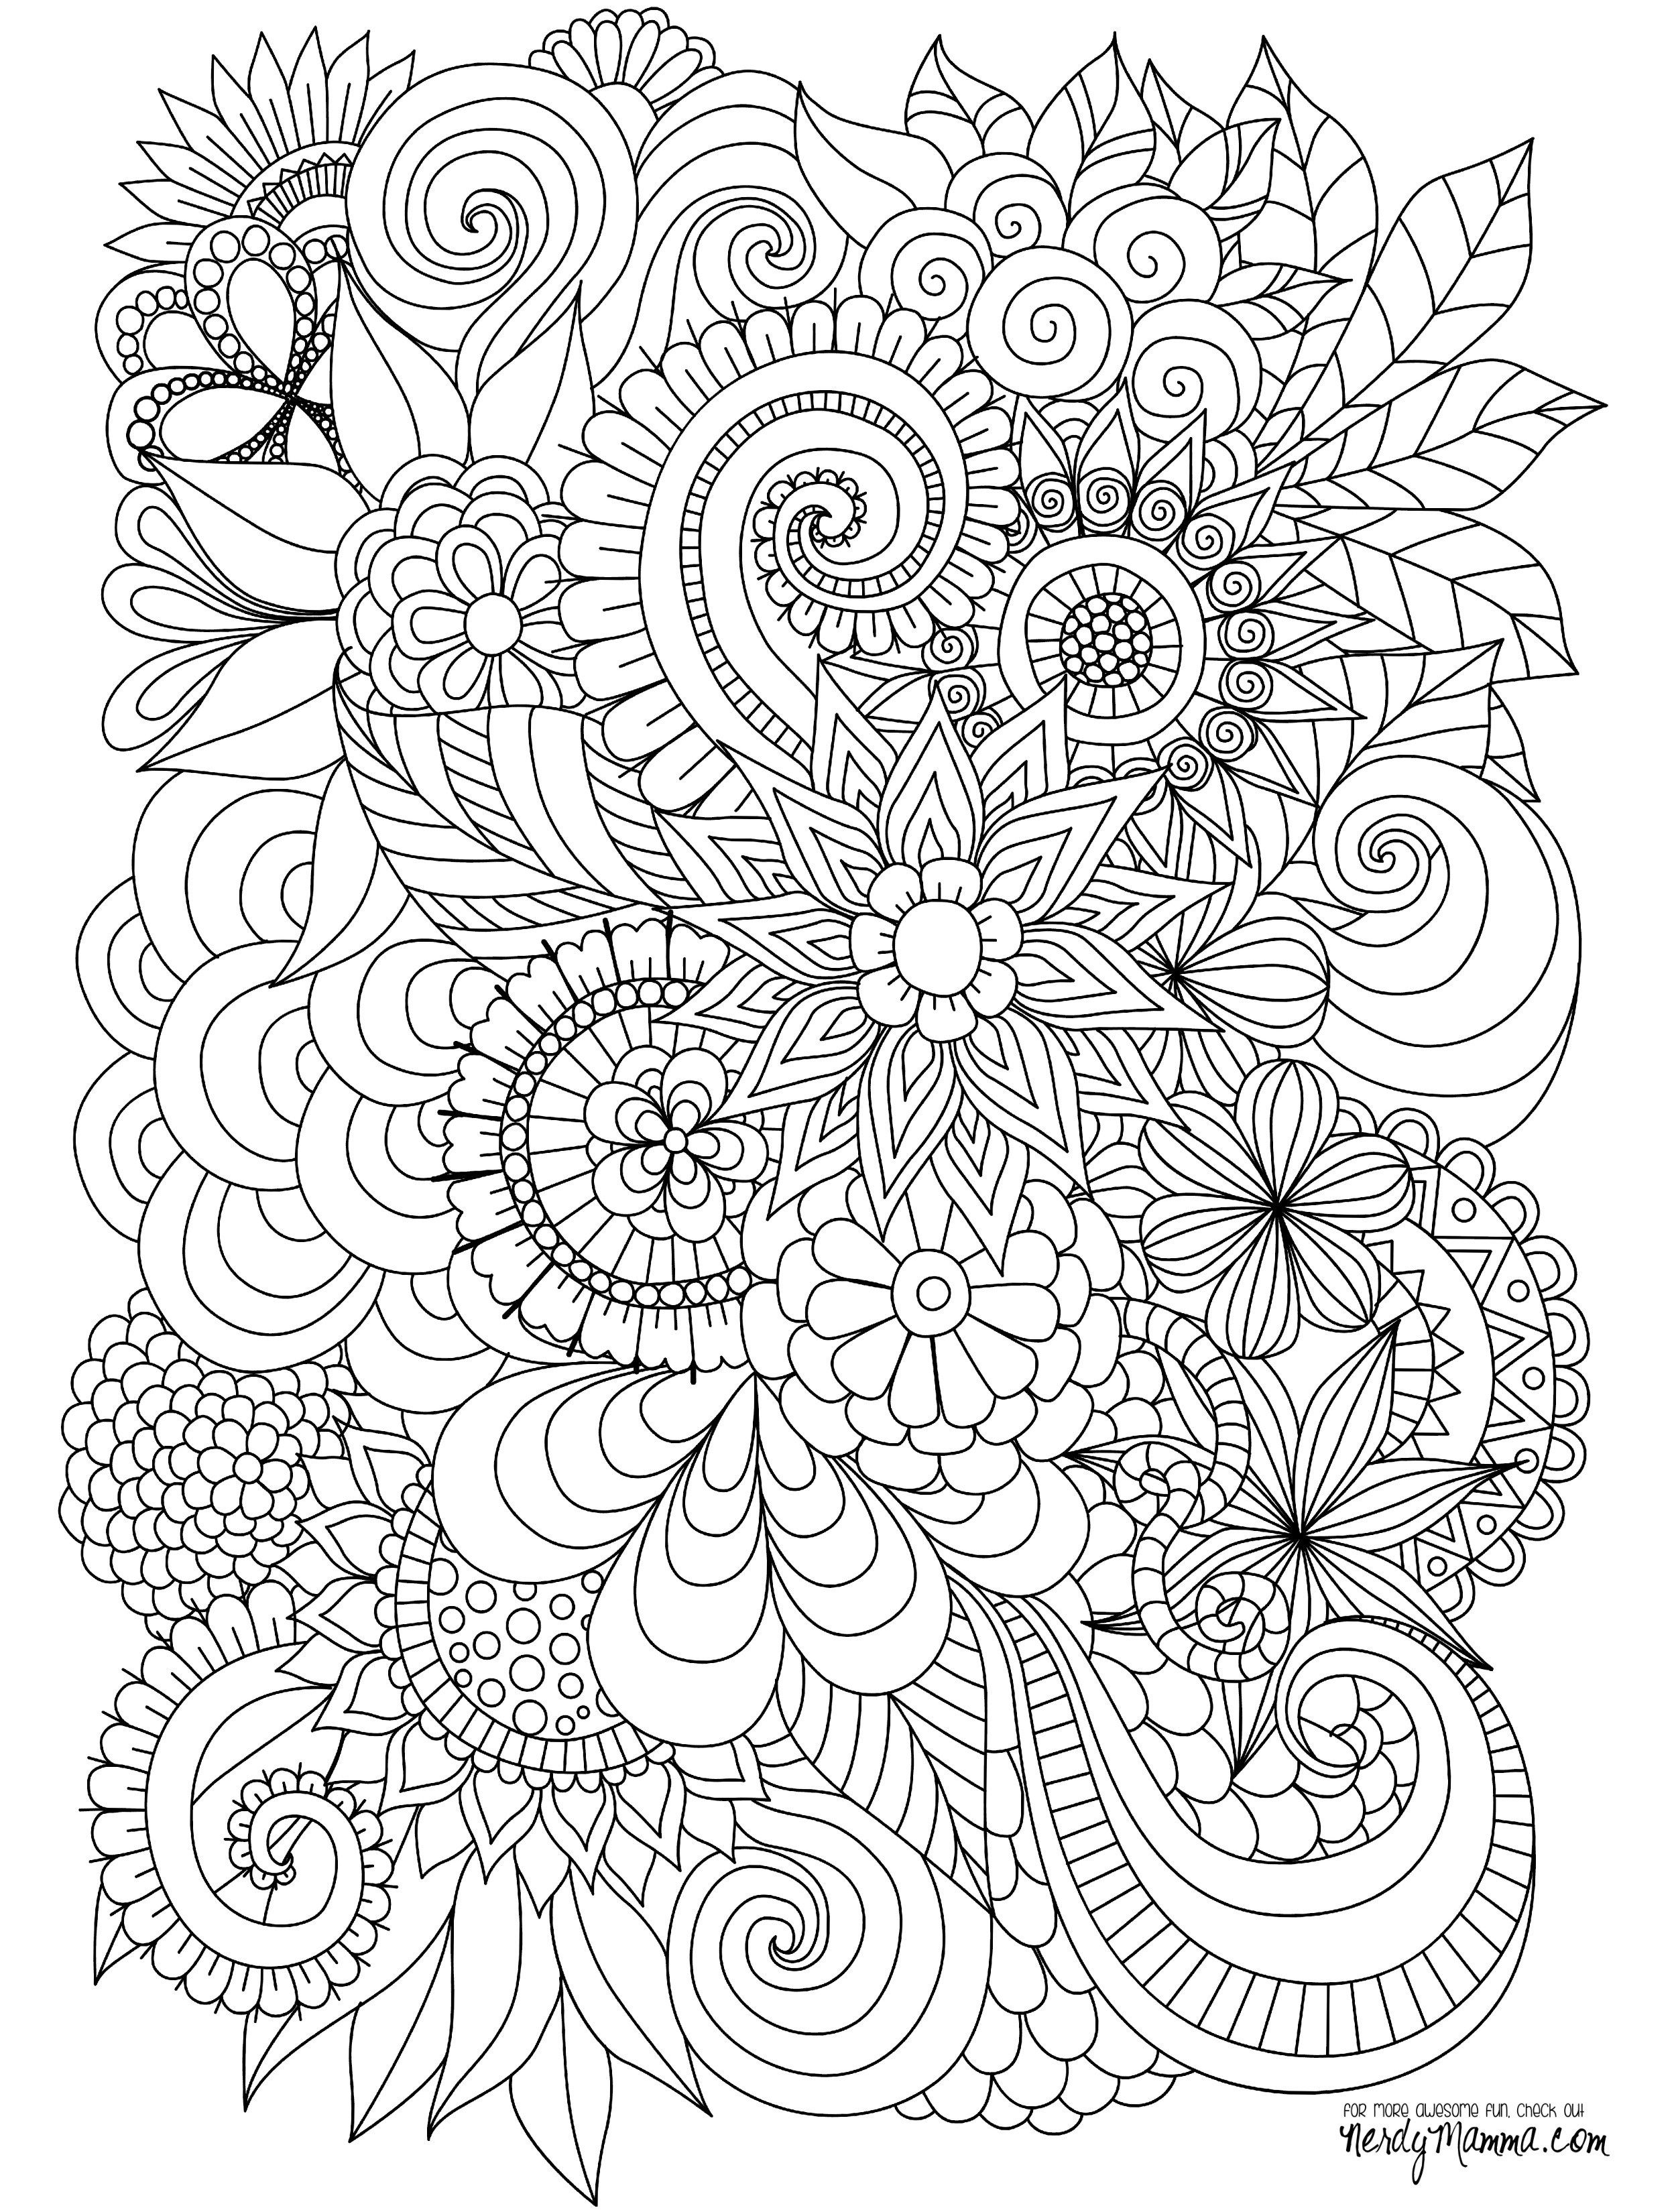 make your own coloring pages for free Download-Flowers Abstract Coloring pages colouring adult detailed advanced printable Kleuren voor volwassenen coloriage pour adulte anti stress kleurplaat voor 19-k